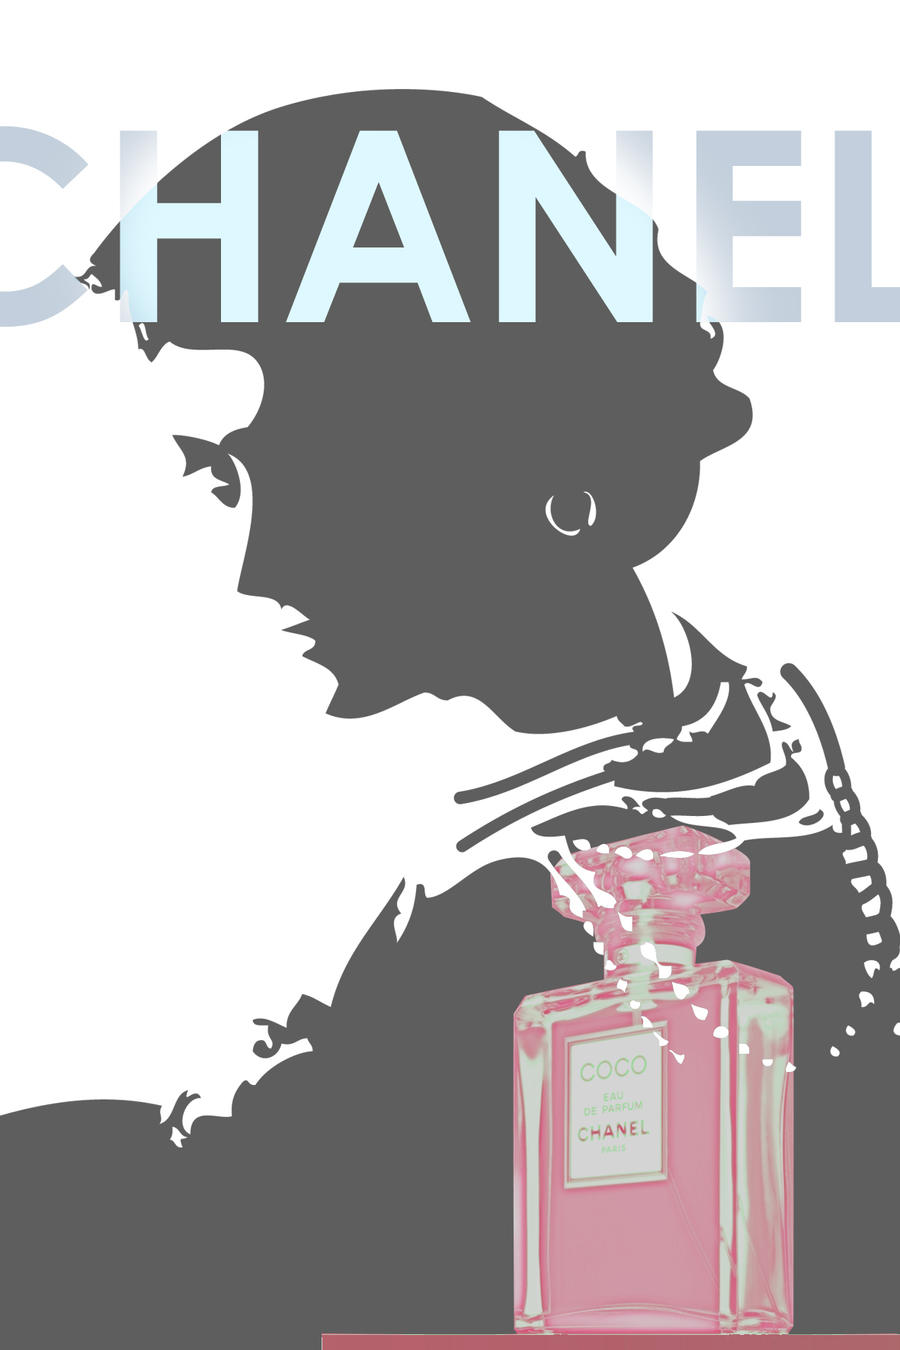 Coco Chanel Advertisement 2 by kokorostudio